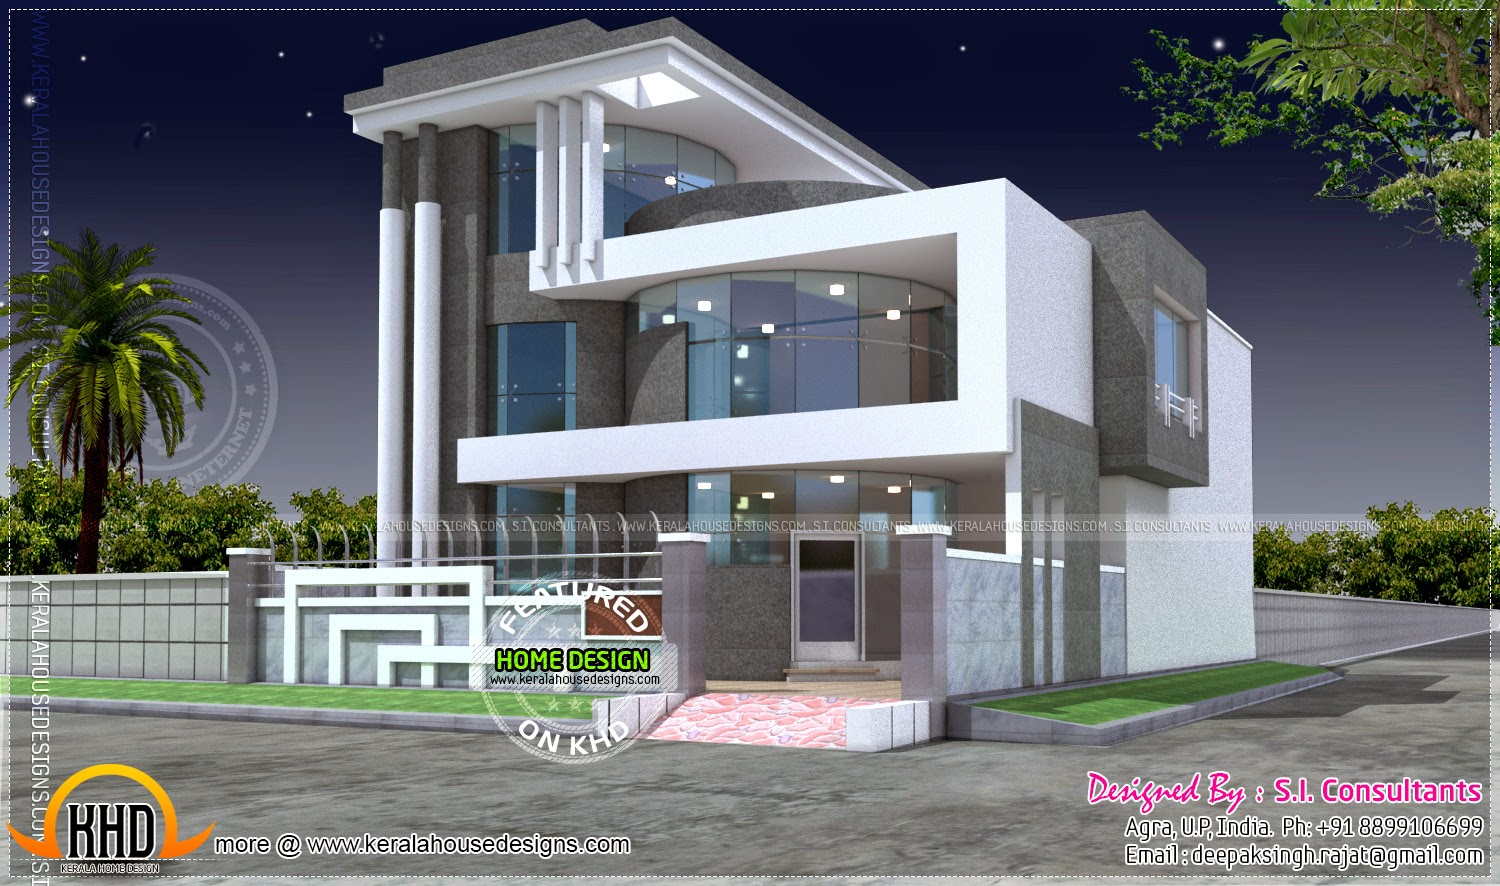 Unique luxury home design kerala home design and floor plans for In ground home designs